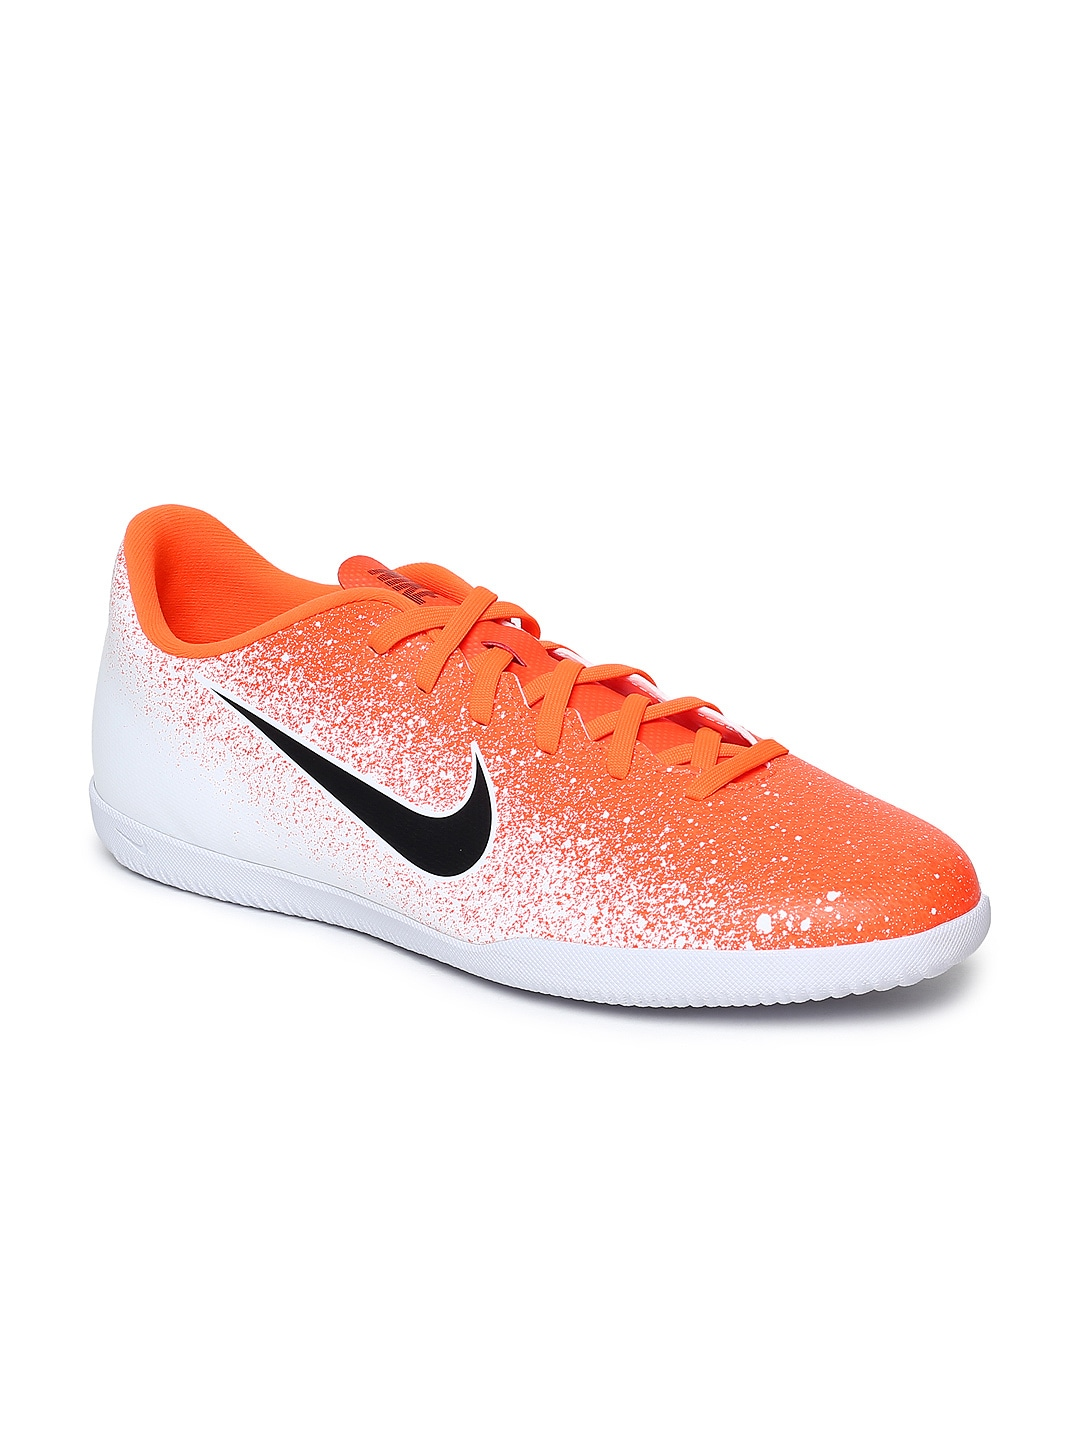 e60383eb57fe Nike Sport Shoe - Buy Nike Sport Shoes At Best Price Online